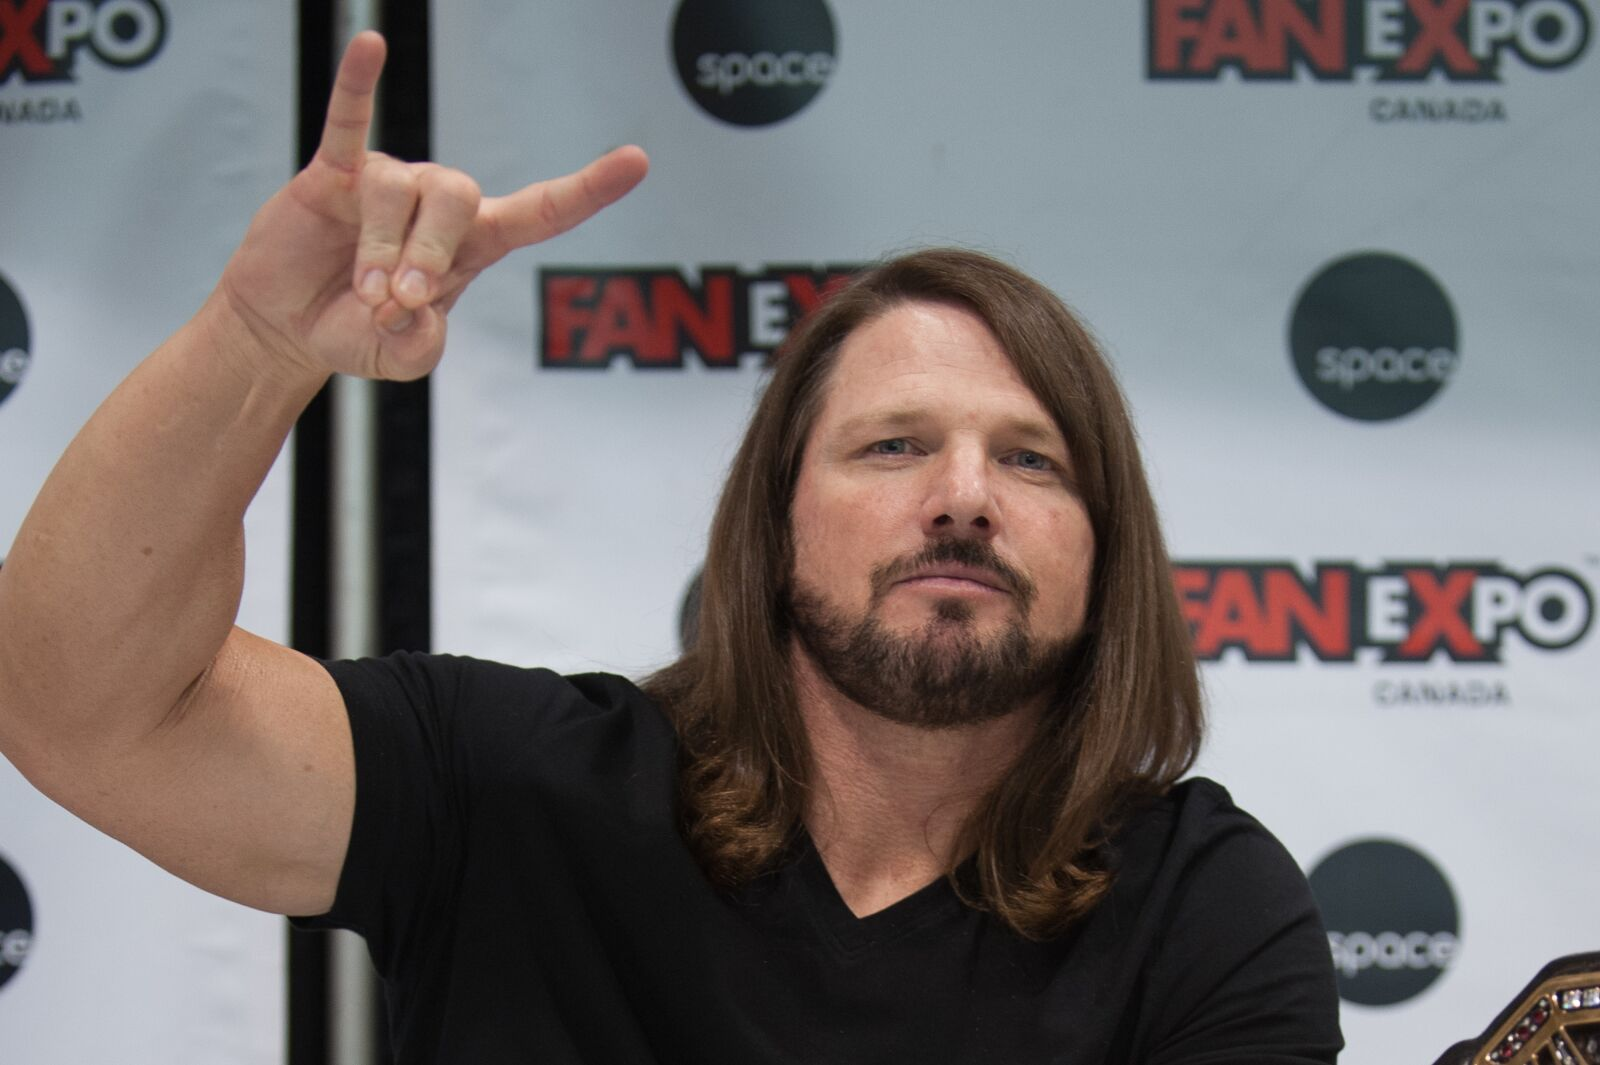 TORONTO, ON - AUGUST 30: Wrestling superstar AJ Styles attends the 2018 Fan Expo Canada at Metro Toronto Convention Centre on August 30, 2018 in Toronto, Canada. (Photo by Che Rosales/Getty Images)